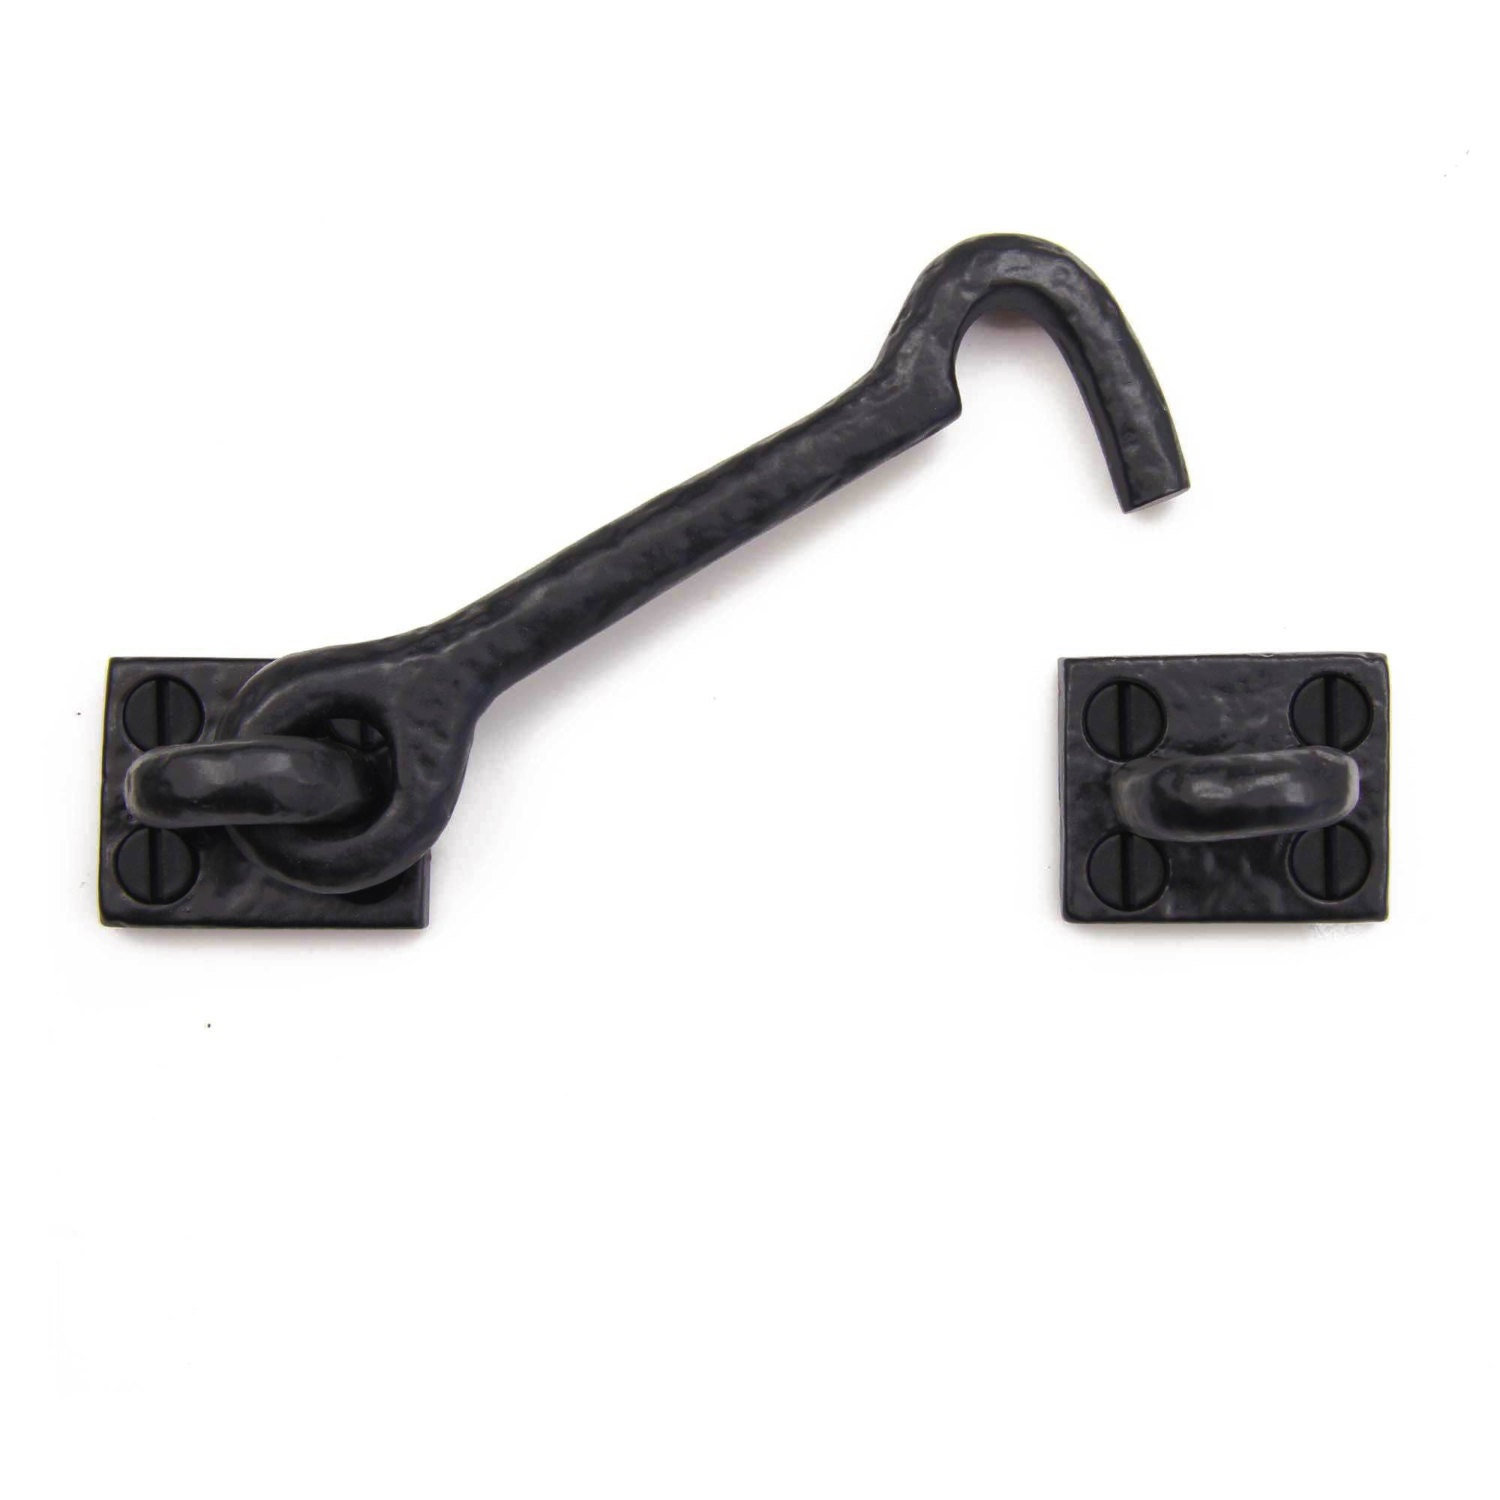 4 5 Iron Cabin Hook Solid Cast Iron